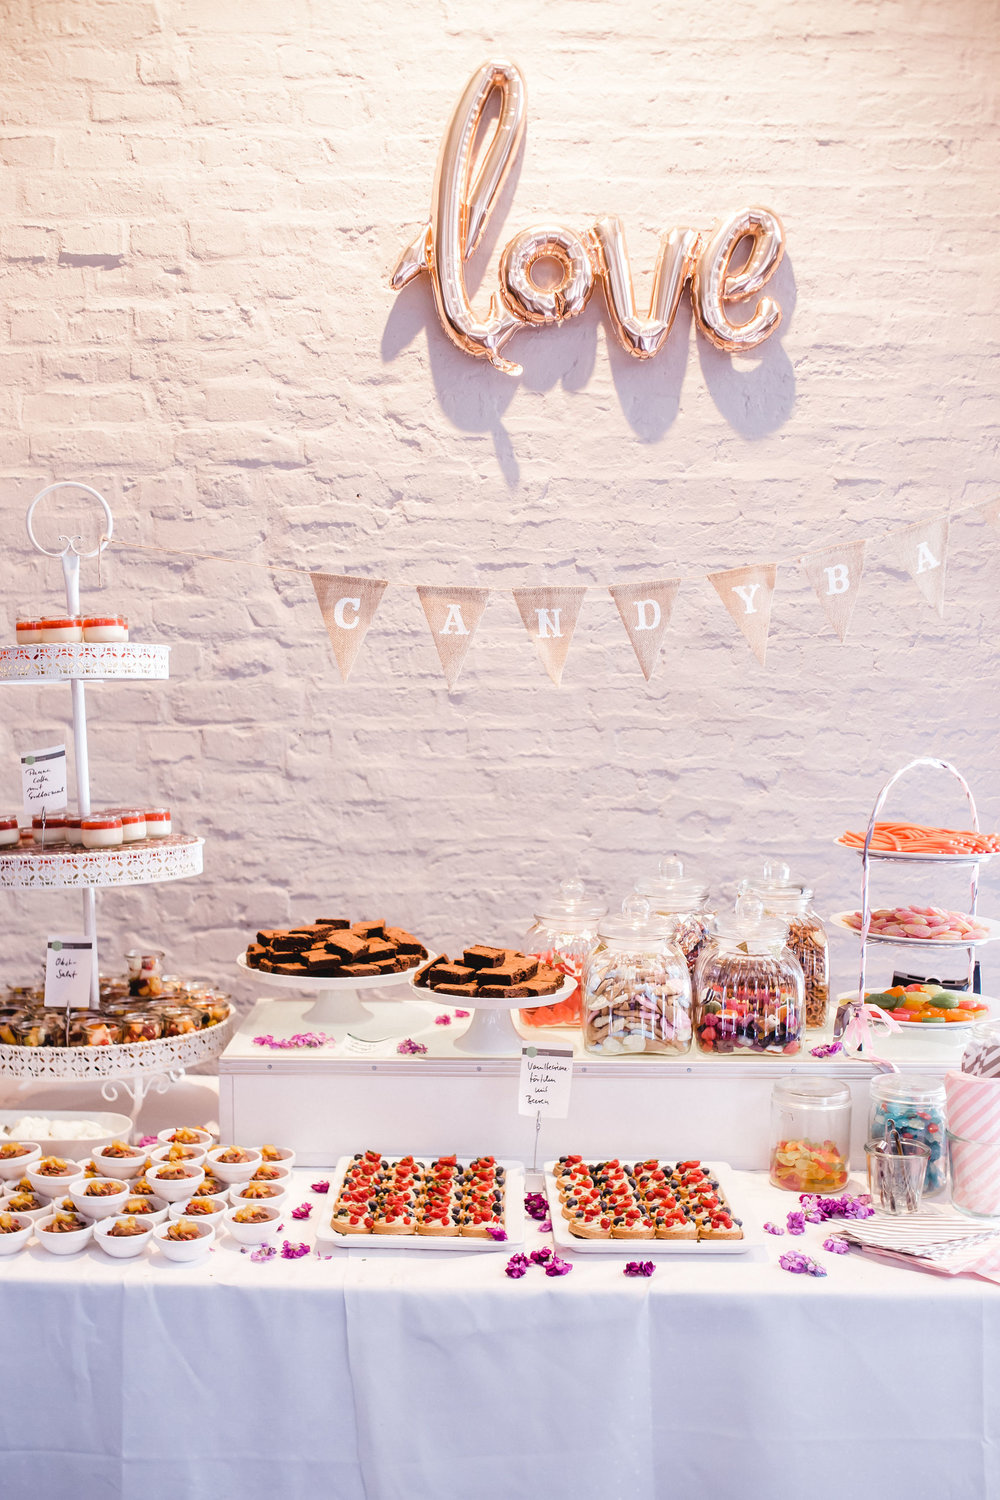 Events Beyond Event Planning | NYC Candy Bar | Sweets and Treats Display | Candy Bar | Dessert Tables | Candy Buffet | Cake | Dessert | Candy| Wedding Favors | Love Sweet Love | Courtney Kern |NYC Boutique Event Planning | Wedding Planning | Event Design | Creative Consulting Firm |